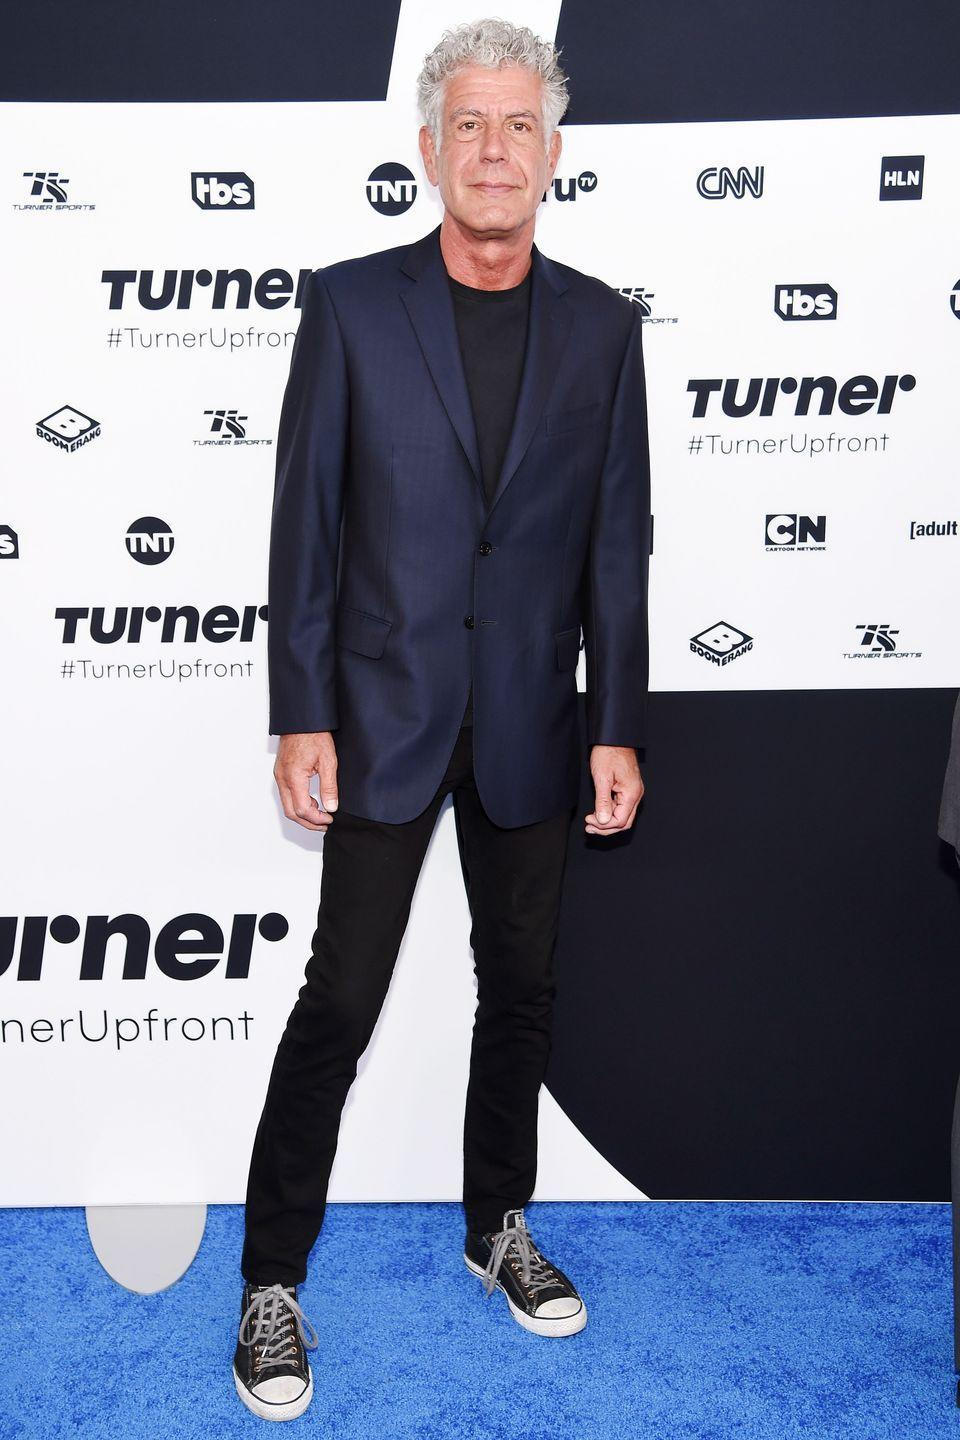 <p>Bourdain attends the Turner Upfront 2017 presentation—where Turner-owned networks like CNN show off their upcoming series to advertisers—on May 17, 2017 in New York. </p>